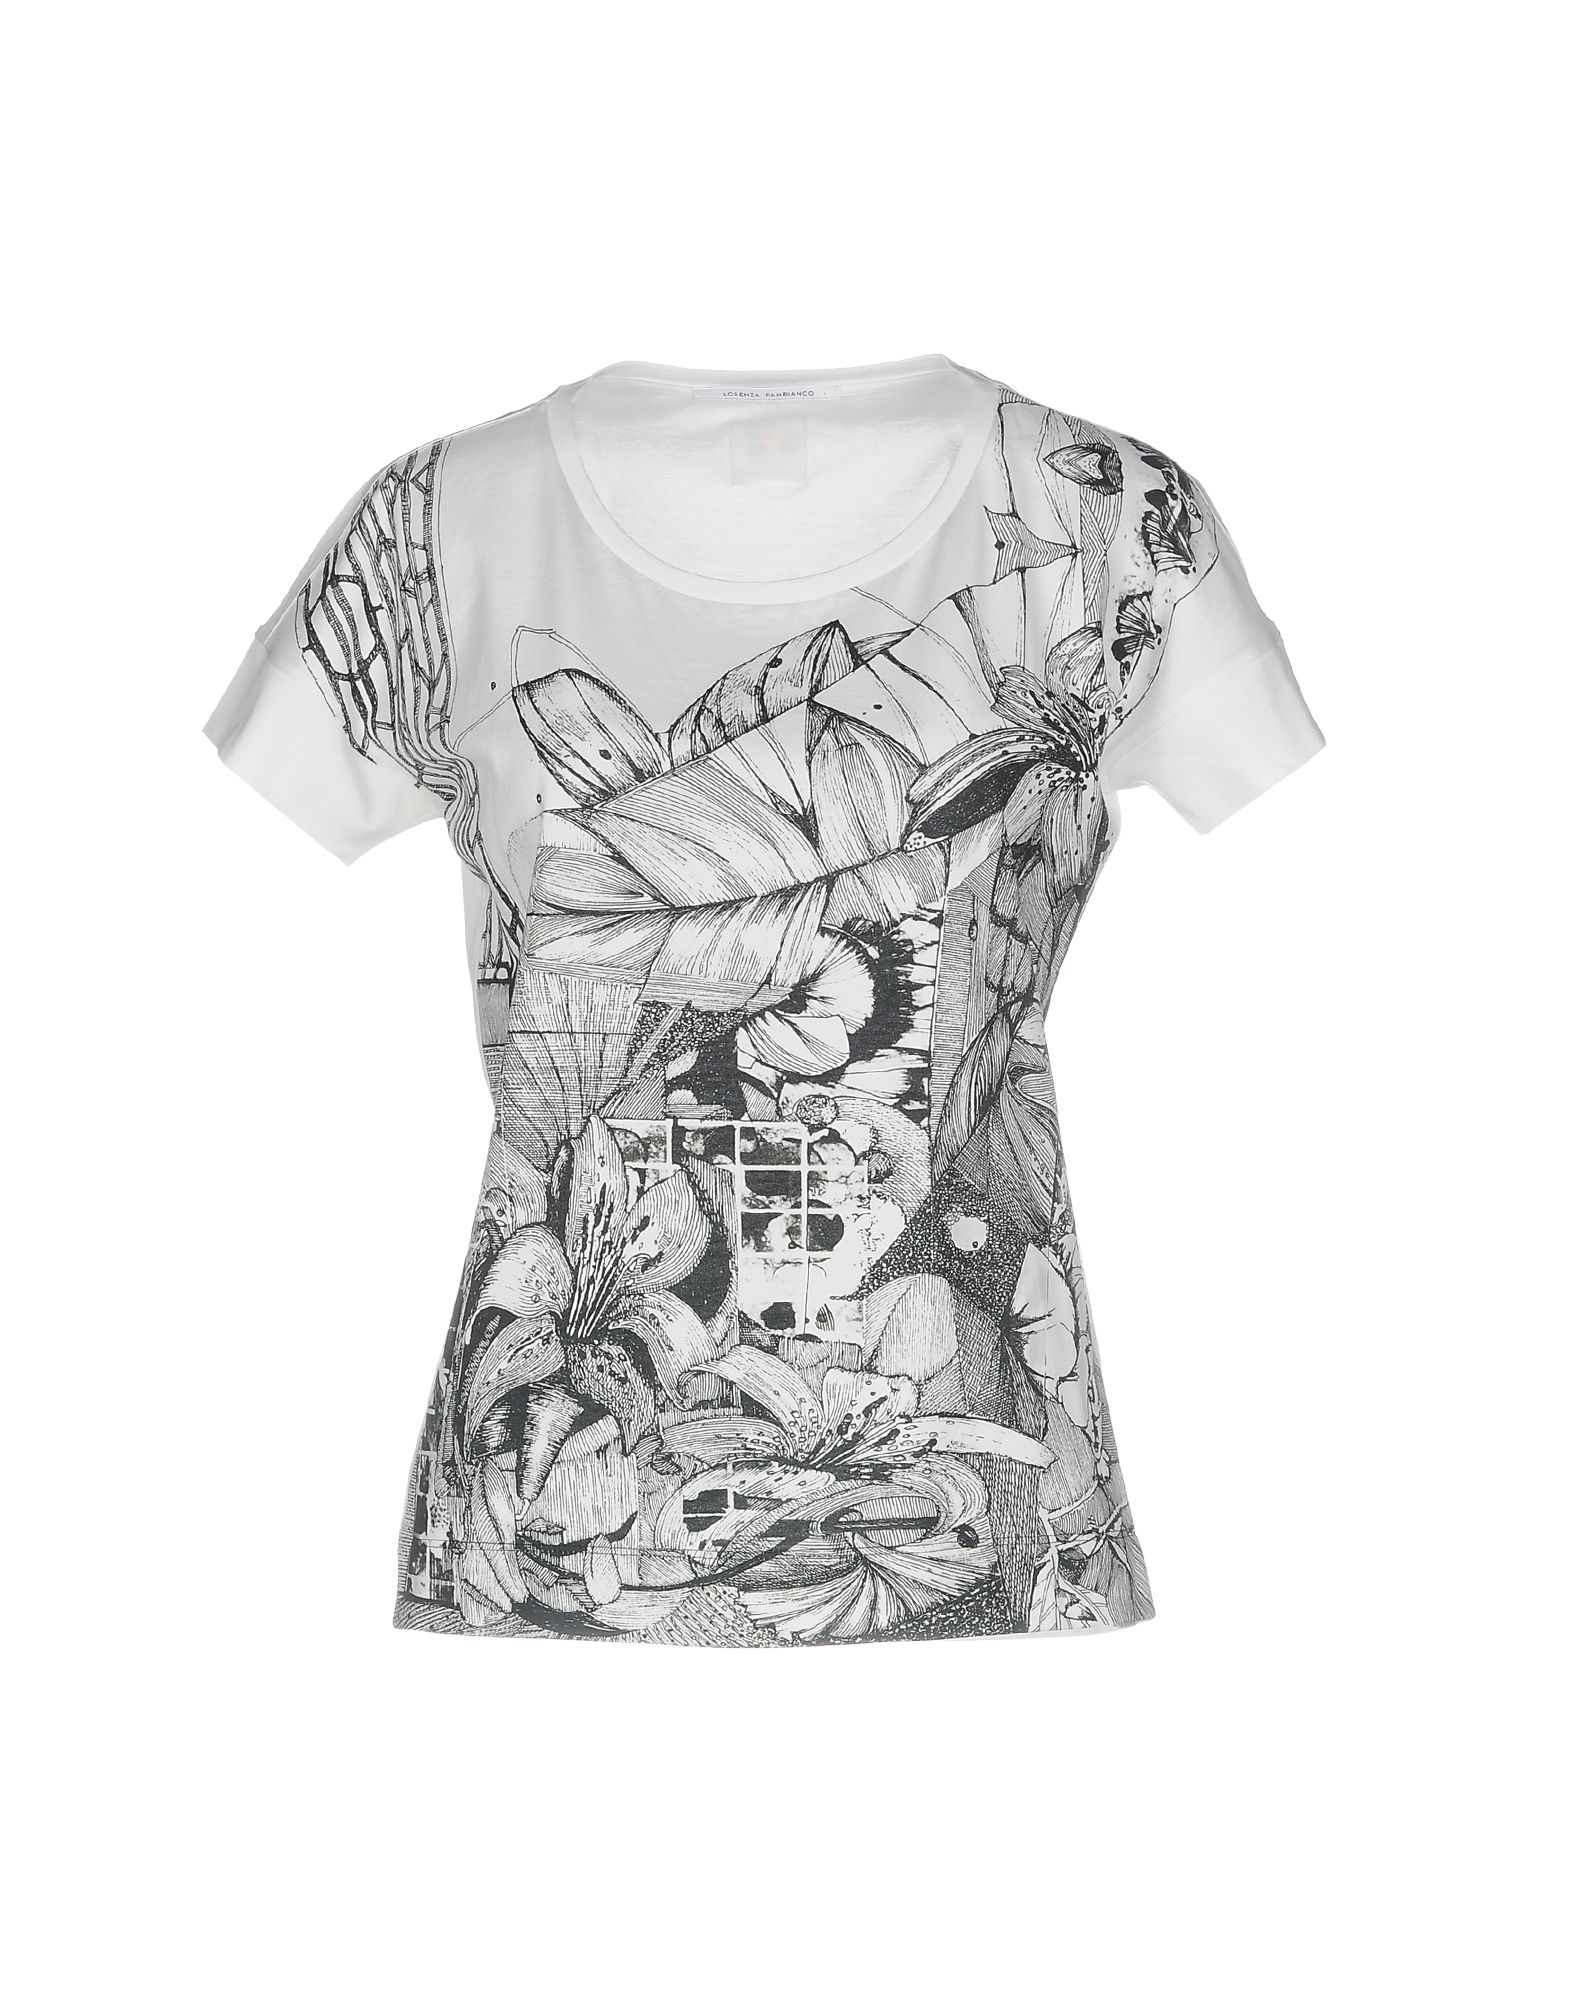 LORENZA PAMBIANCO T-Shirt in White